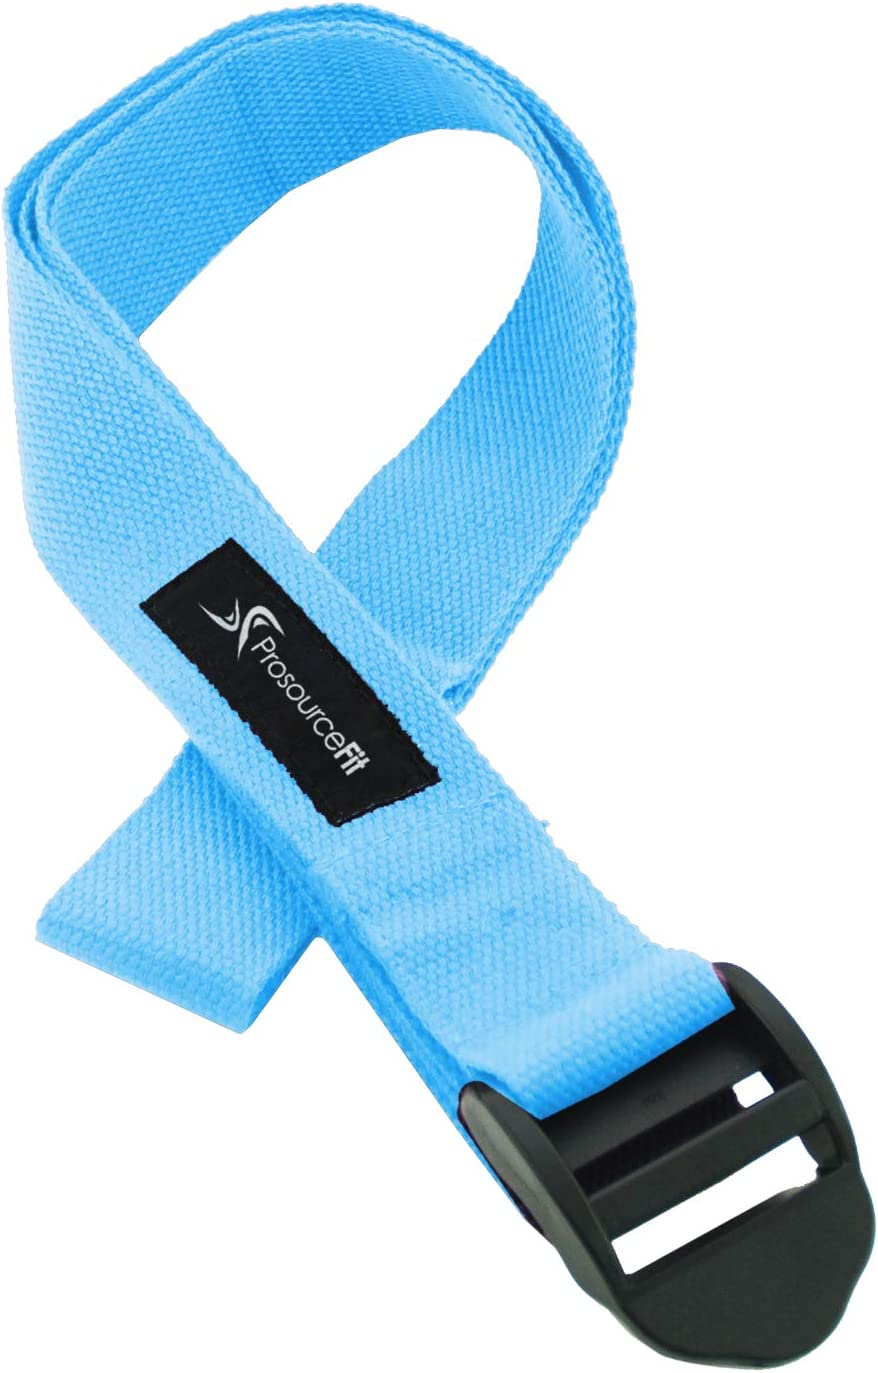 Prosource Fit Cinch Buckle Yoga Strap, Durable Cotton 8ft. x 1.5in for Stretching, Holding Yoga Poses and Physical Therapy